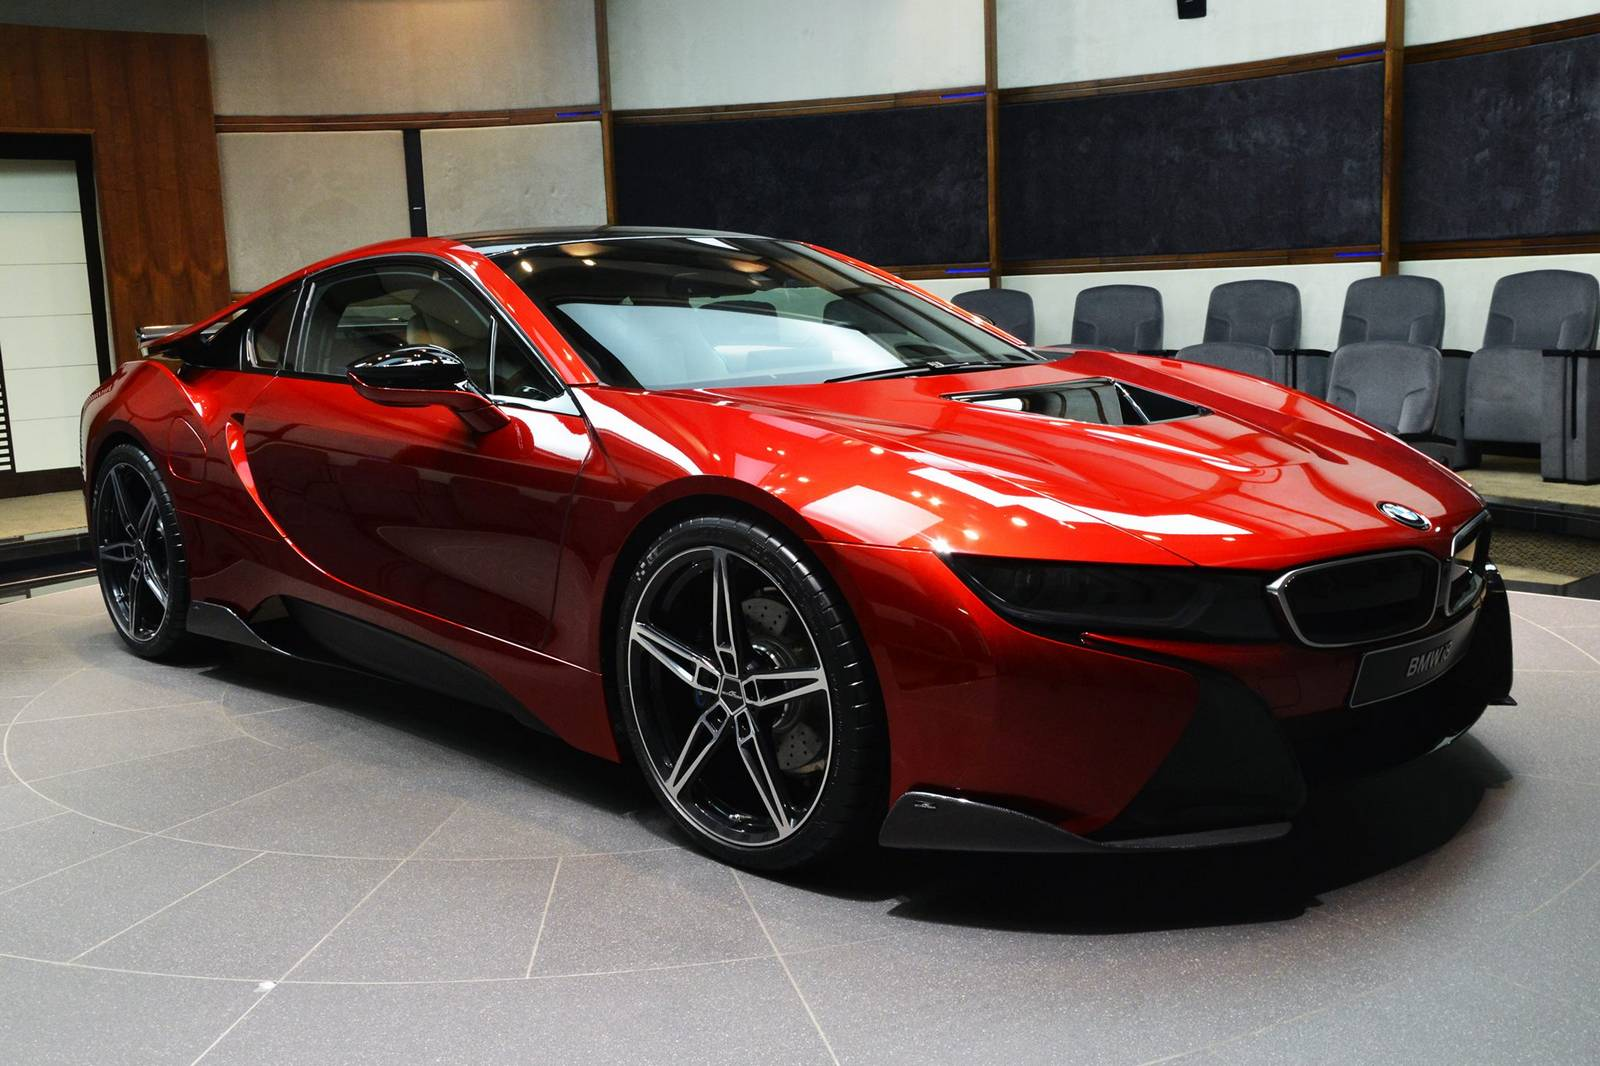 1 of 1 lava red bmw i8 built for princess al hawi in abu. Black Bedroom Furniture Sets. Home Design Ideas